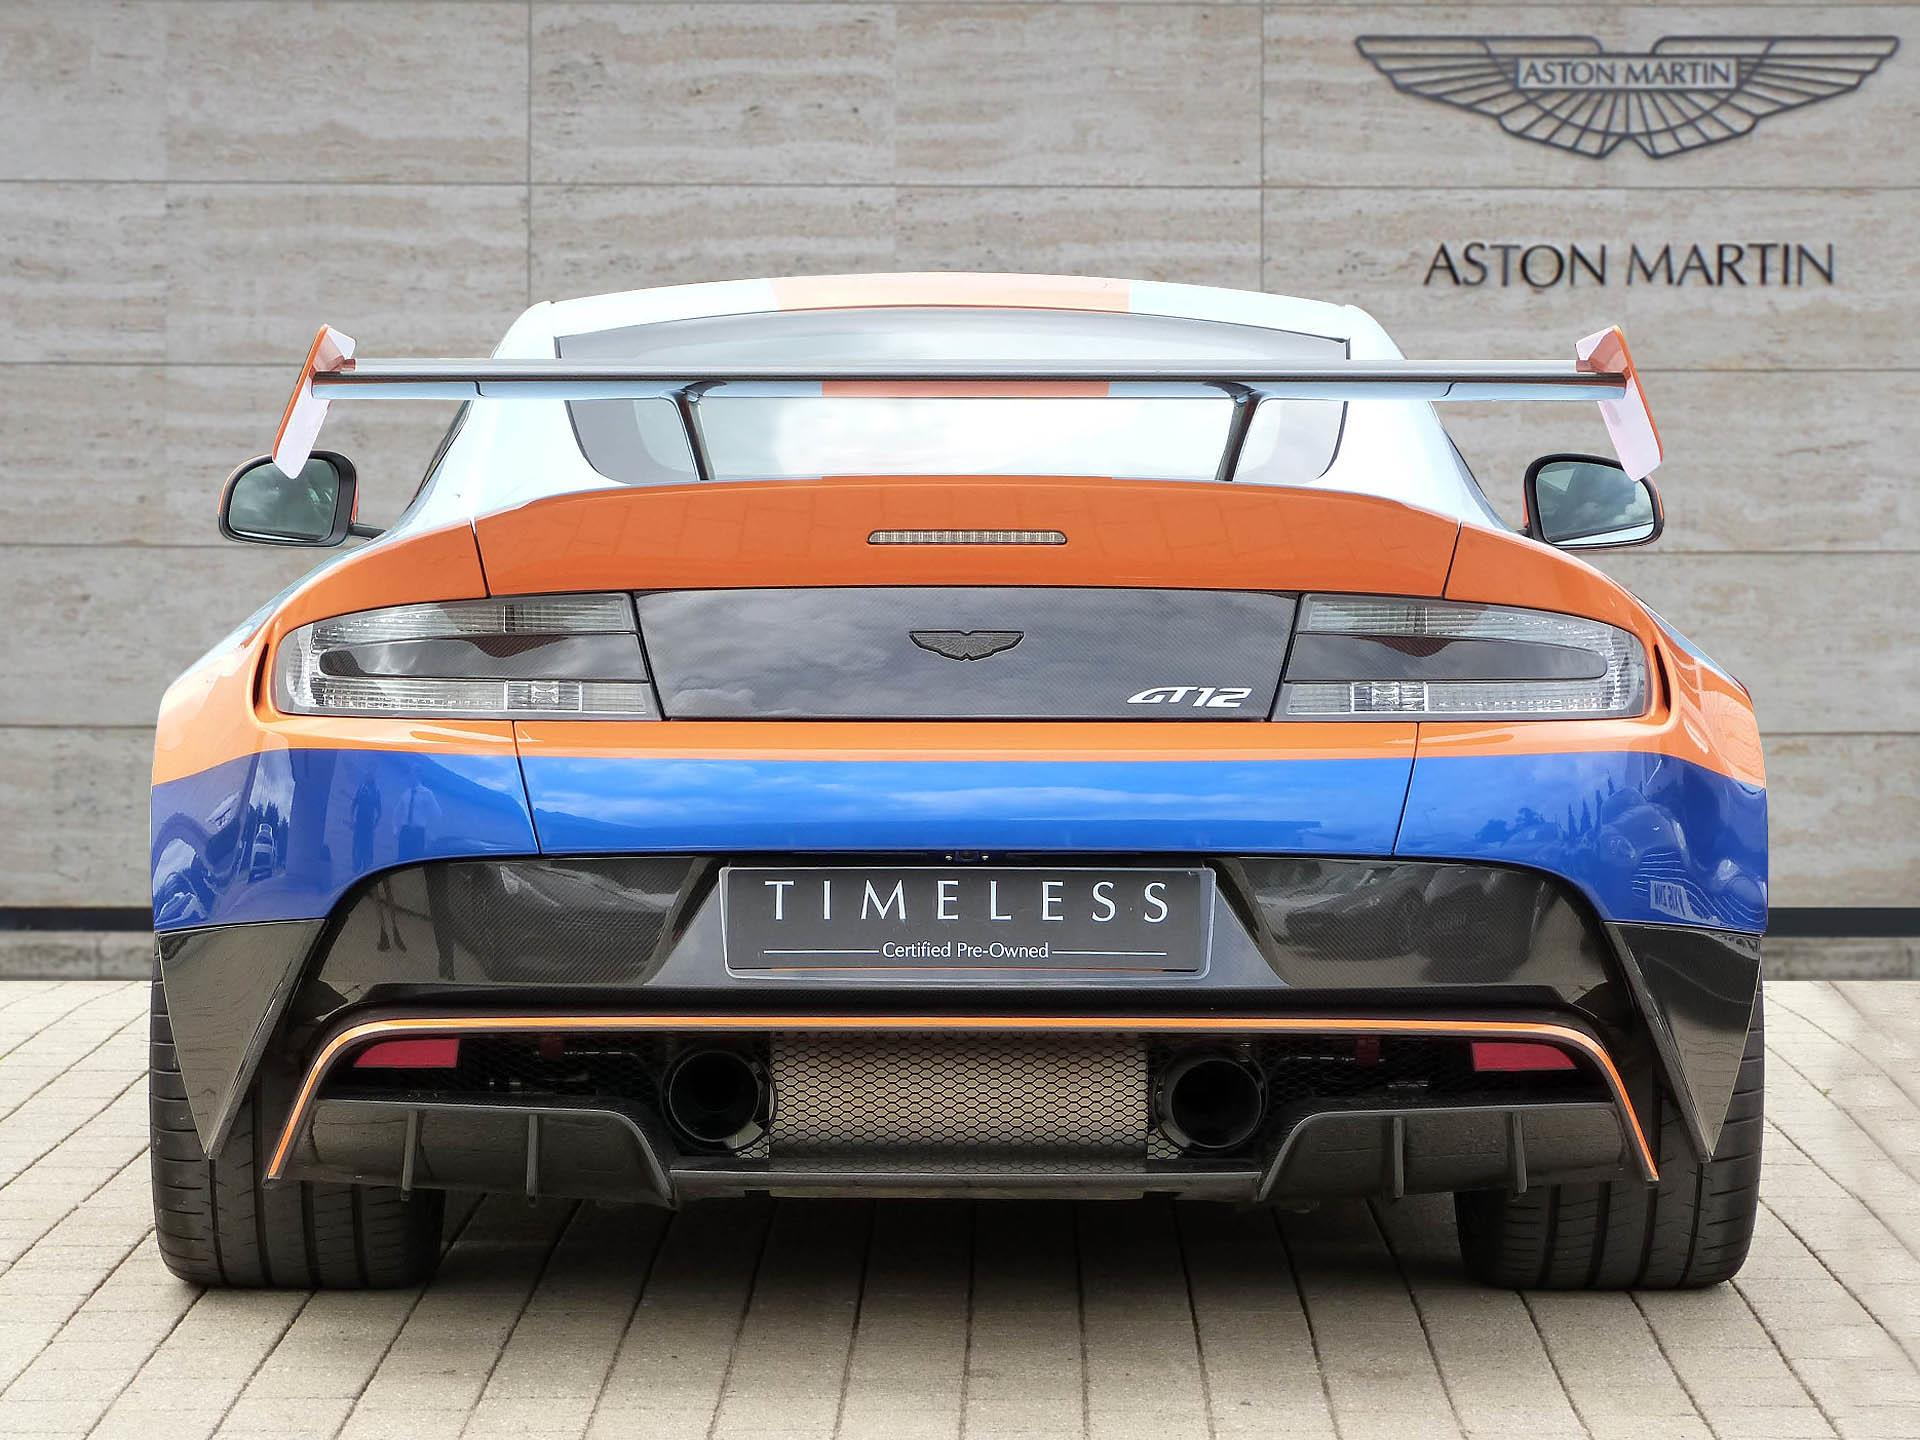 Aston Martin GT12 Coupé